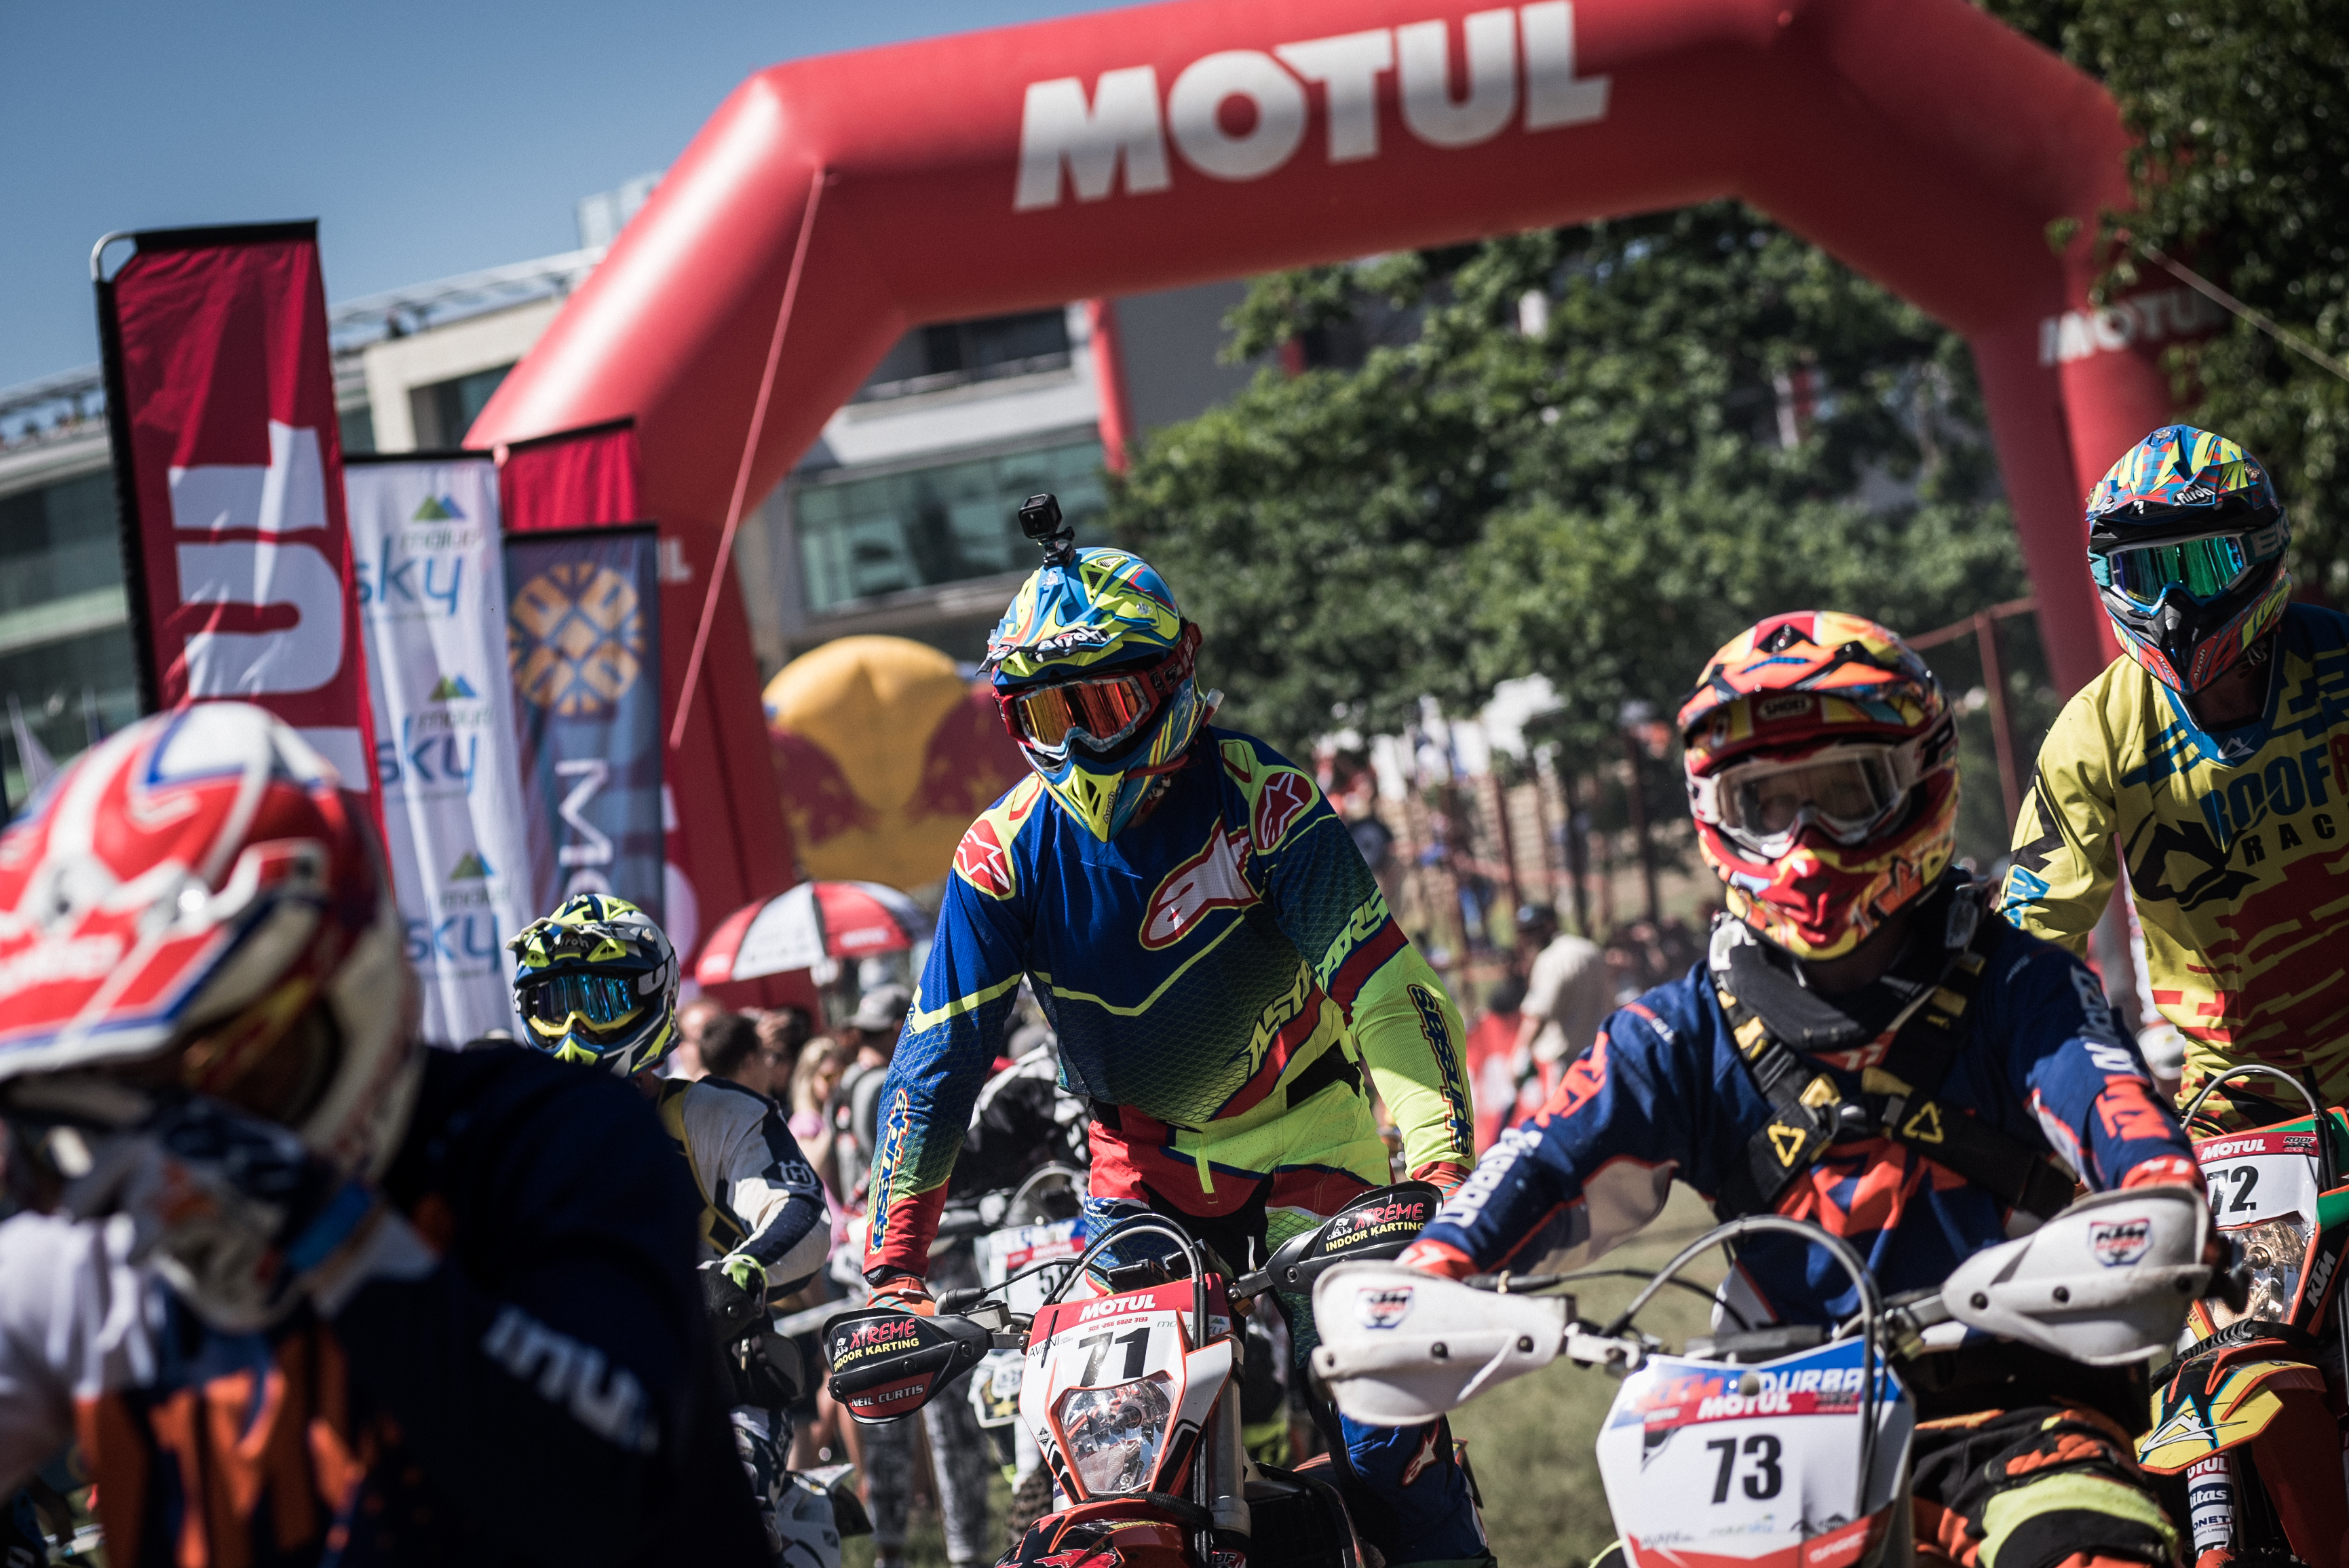 2017 Motul Roof of Africa: The 50th Edition